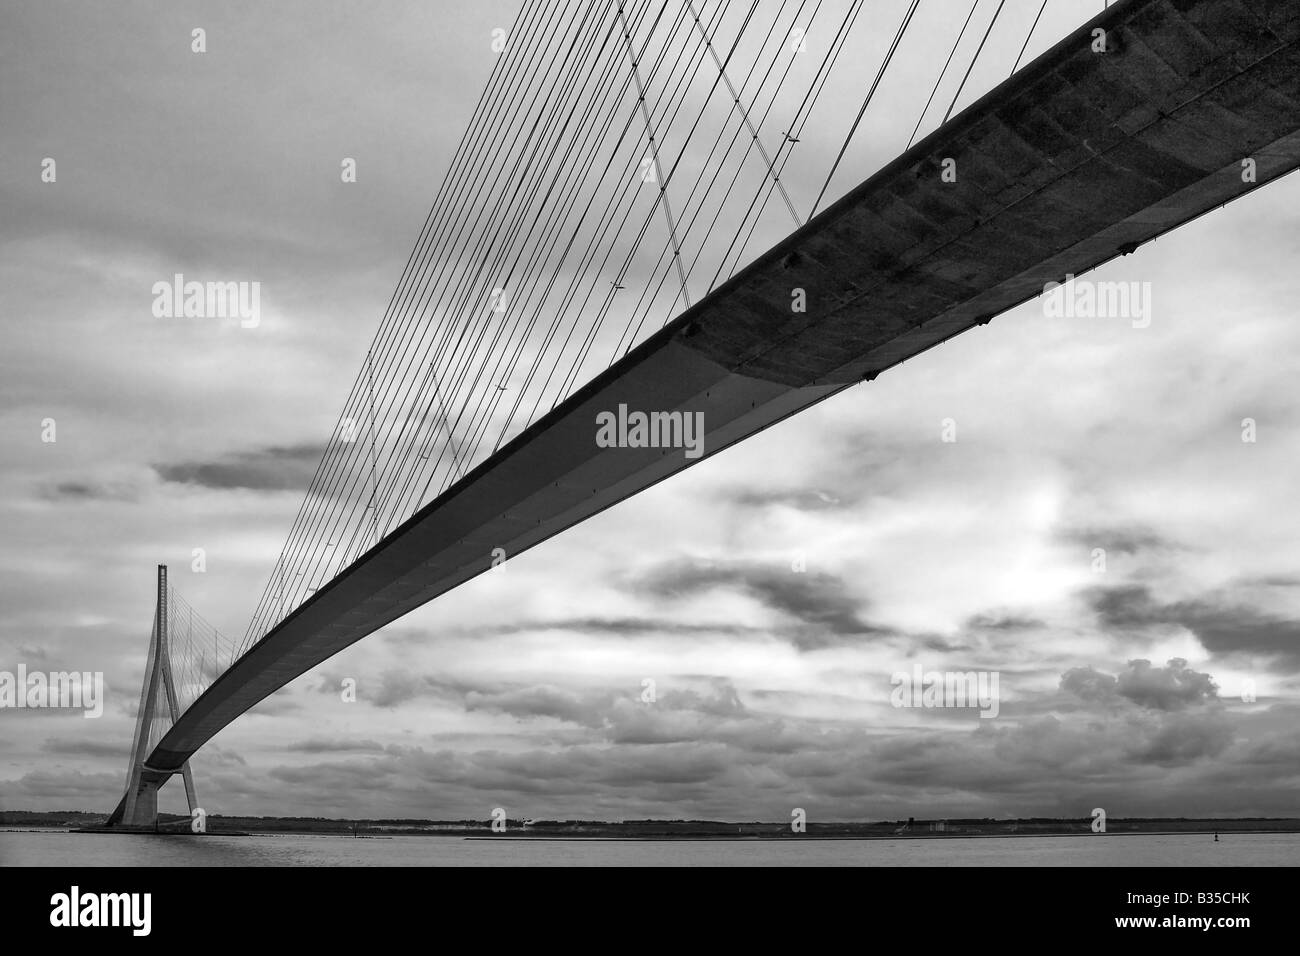 A moody black and white representation of the Pont de Normandie near to Honfleur in Normandy, France - Stock Image